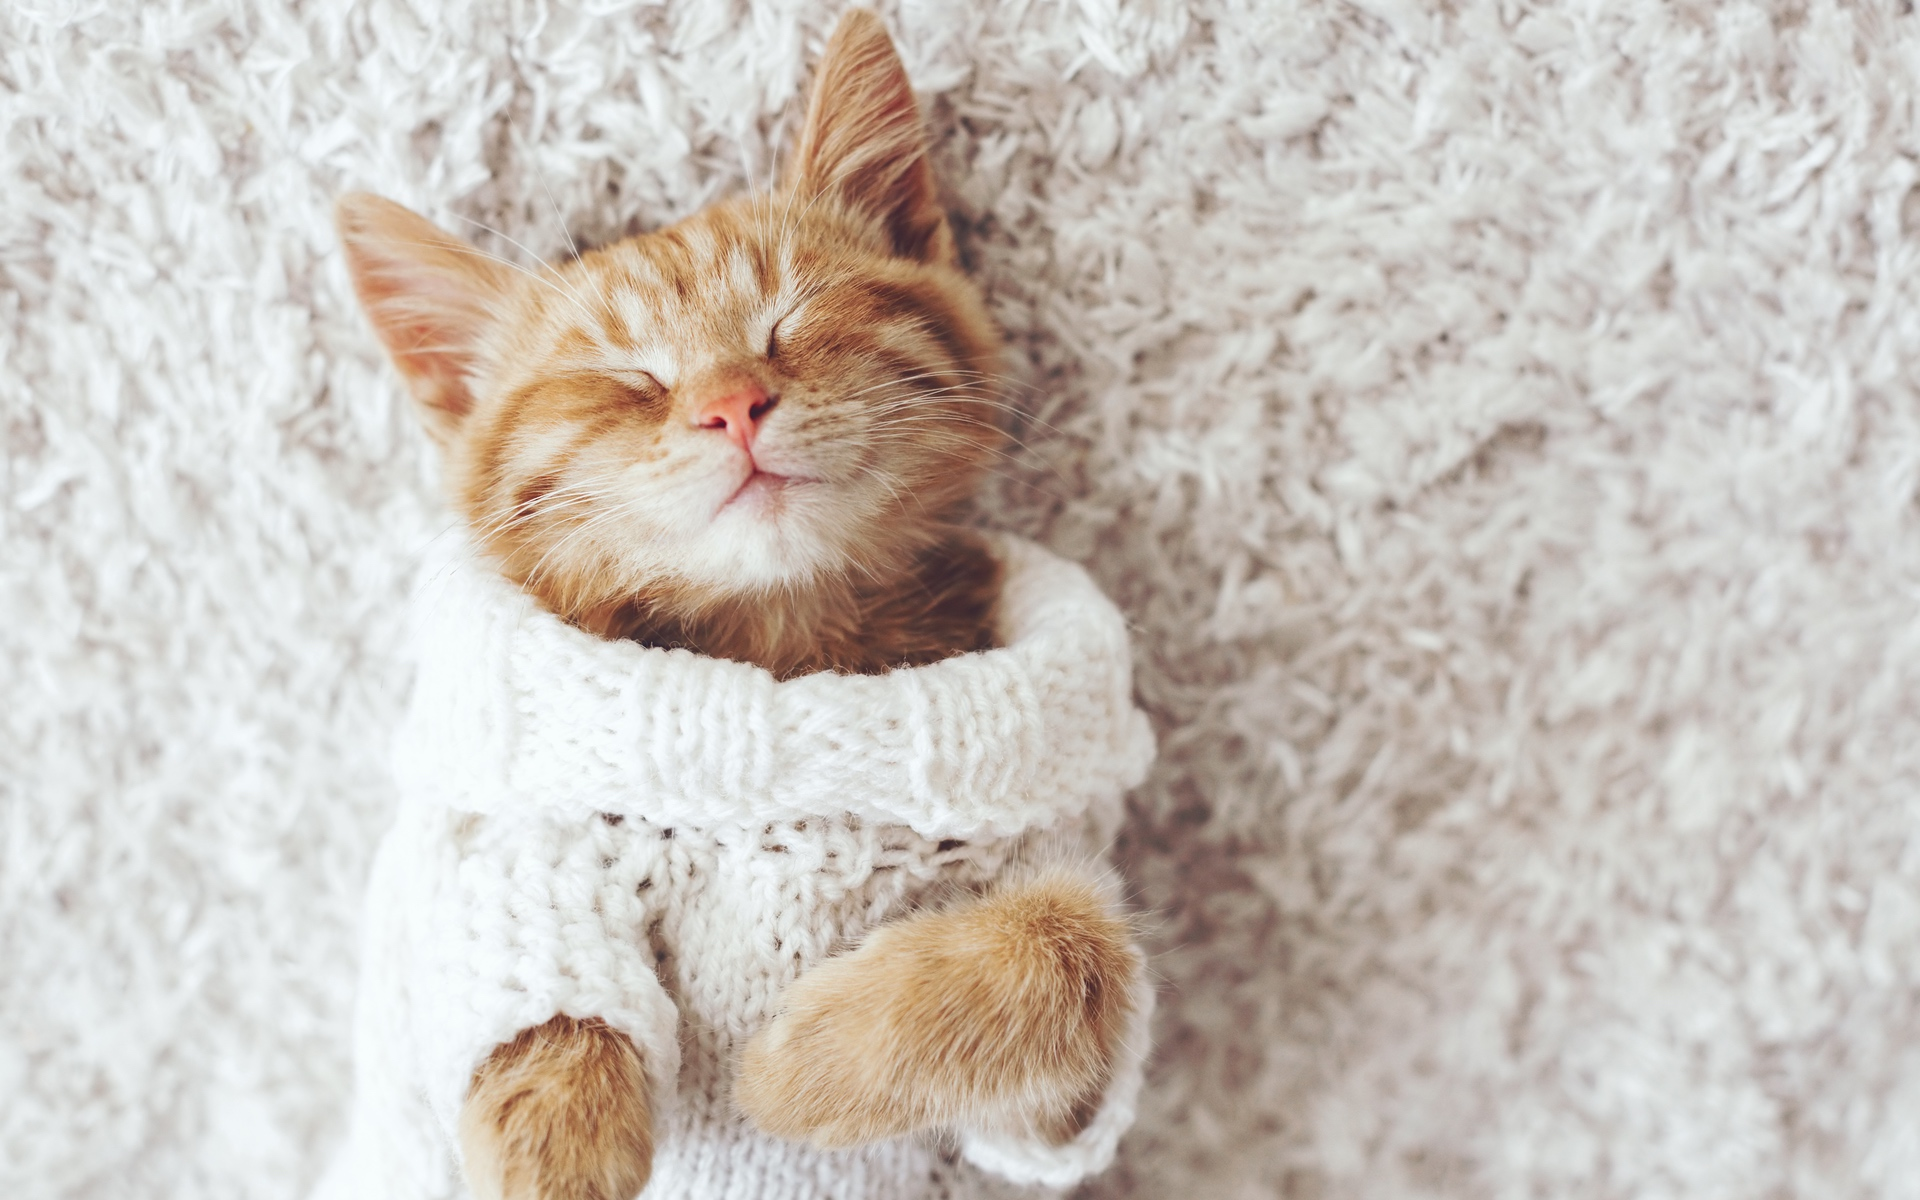 sleeping kitten wearing a knitted sweater